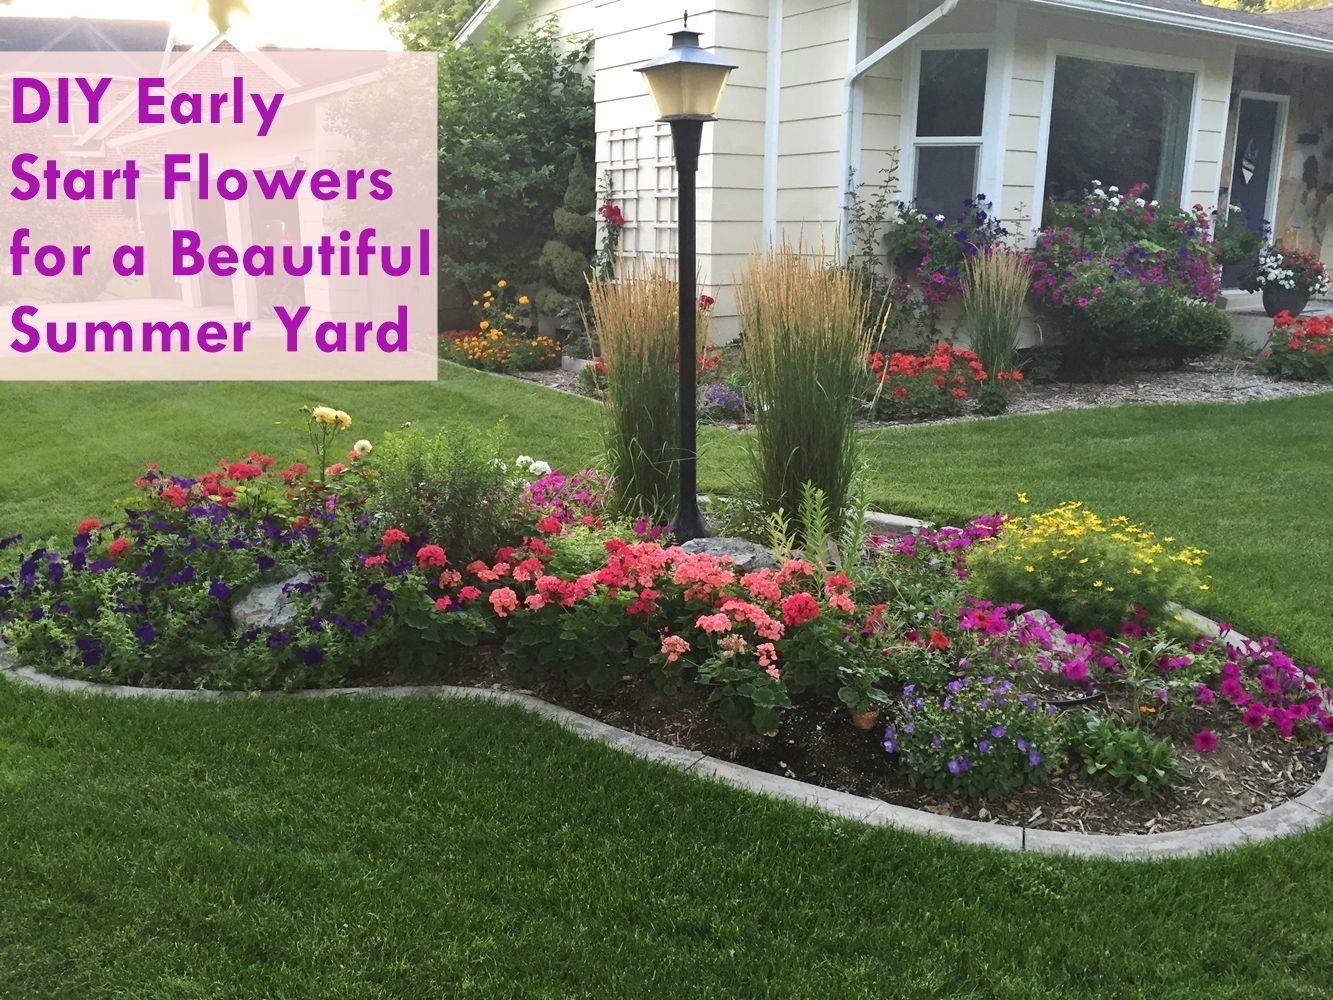 Diy Flower Bed Starts Home Decorating Trends Homedit